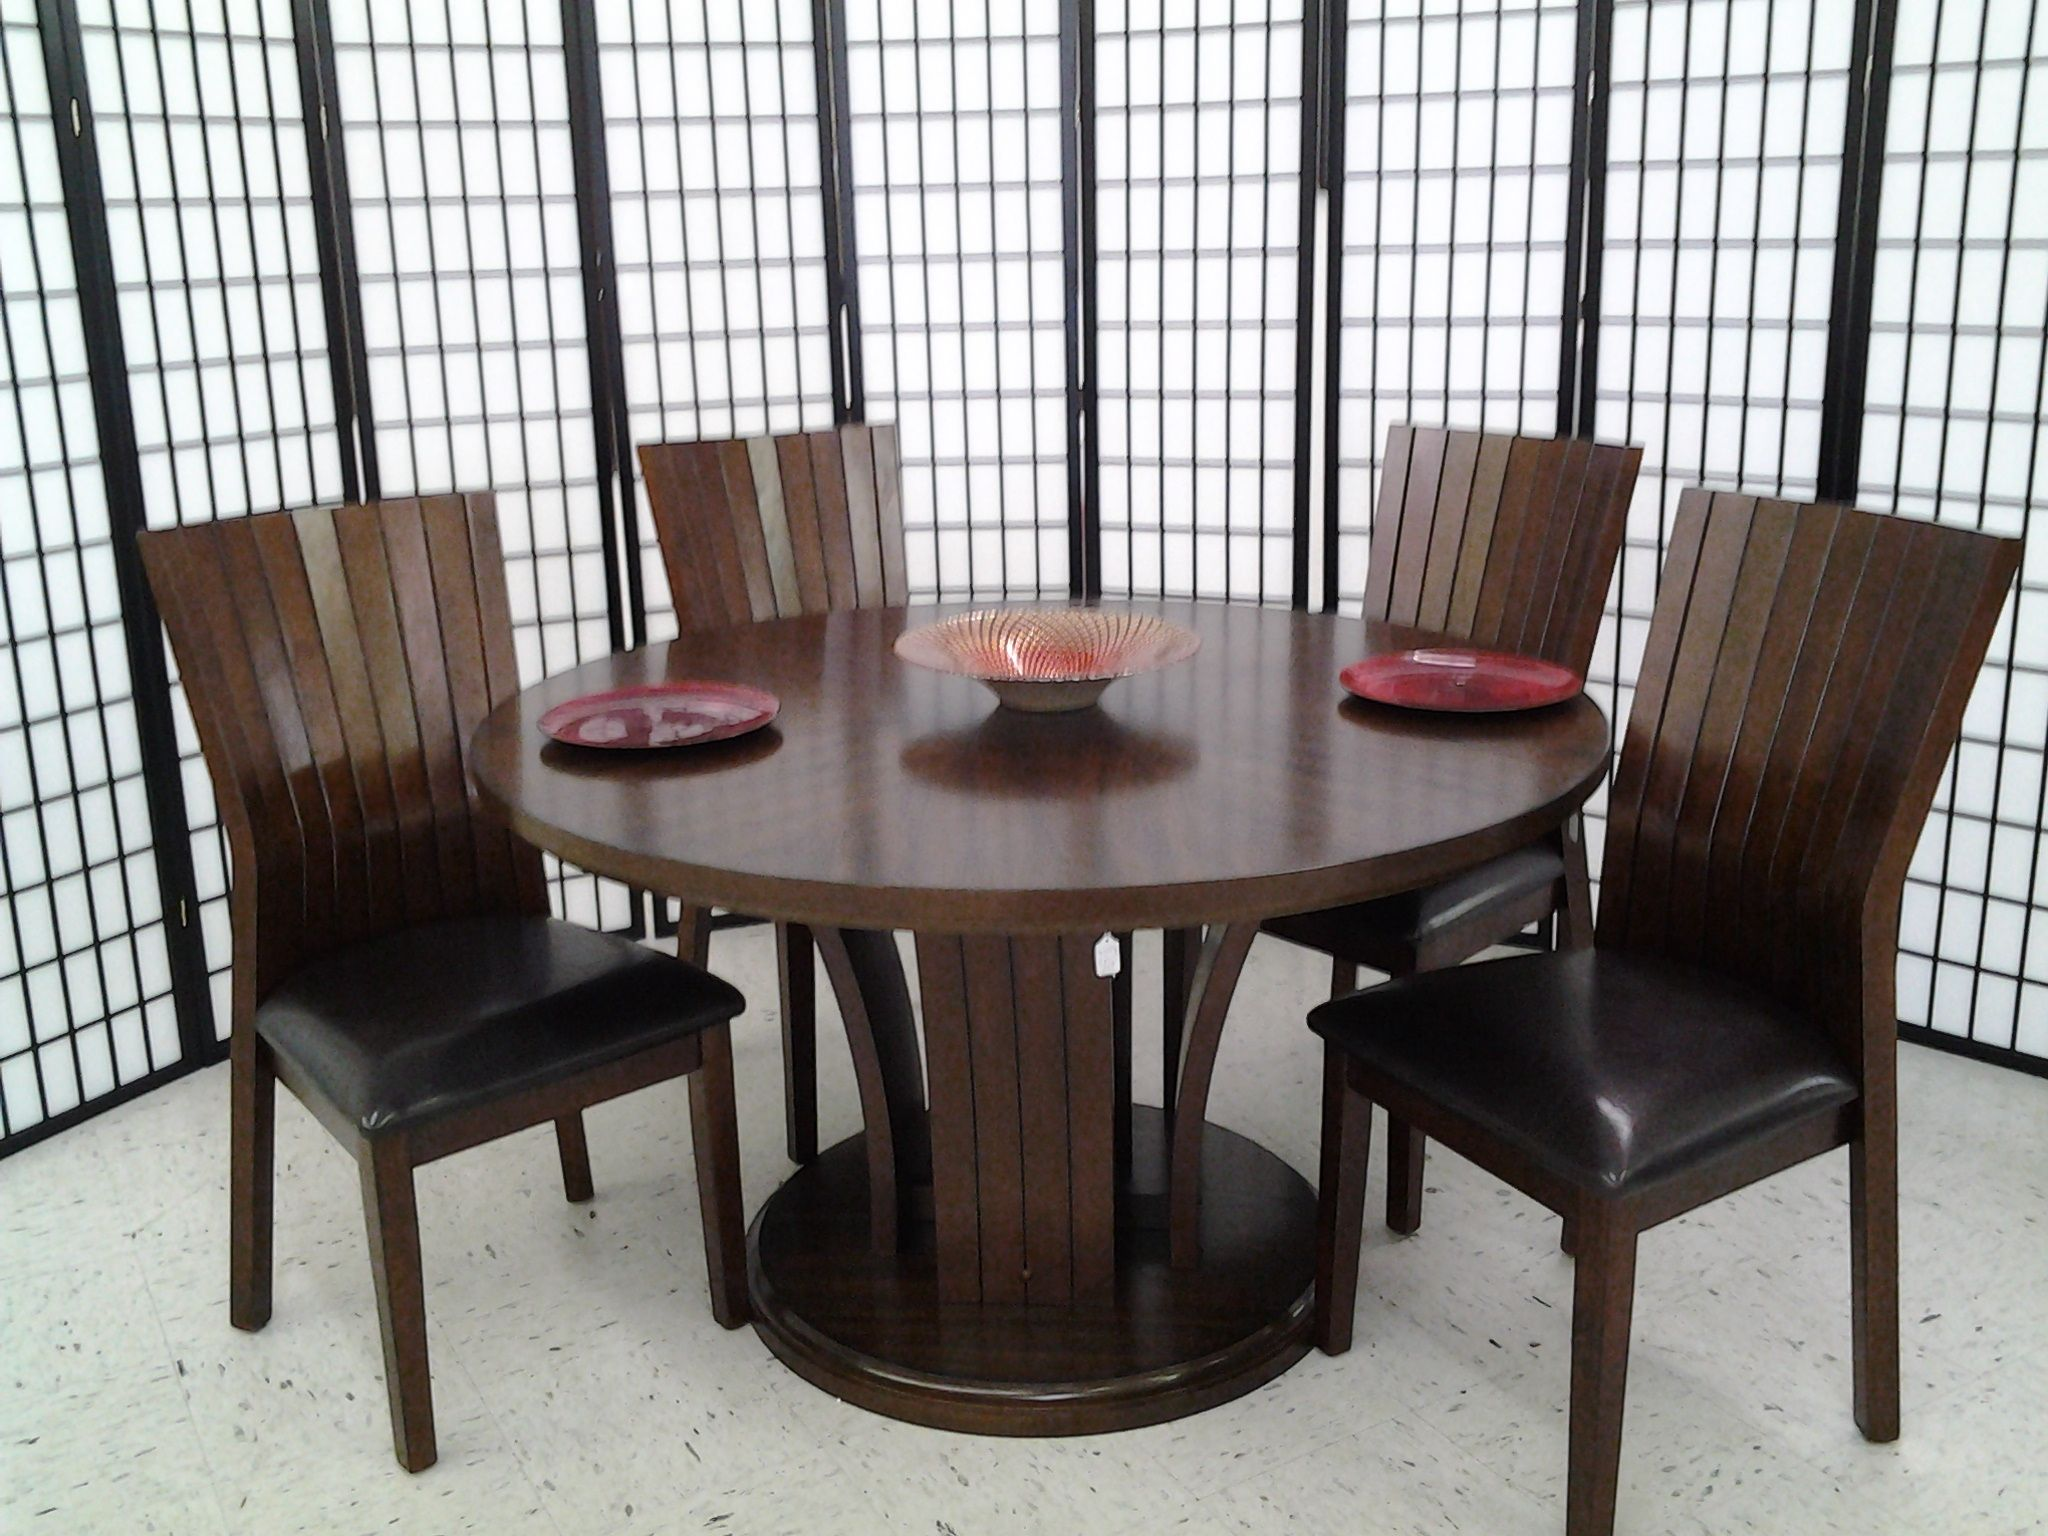 Daria 54 Inch Round Dining Table With 4 Chairs